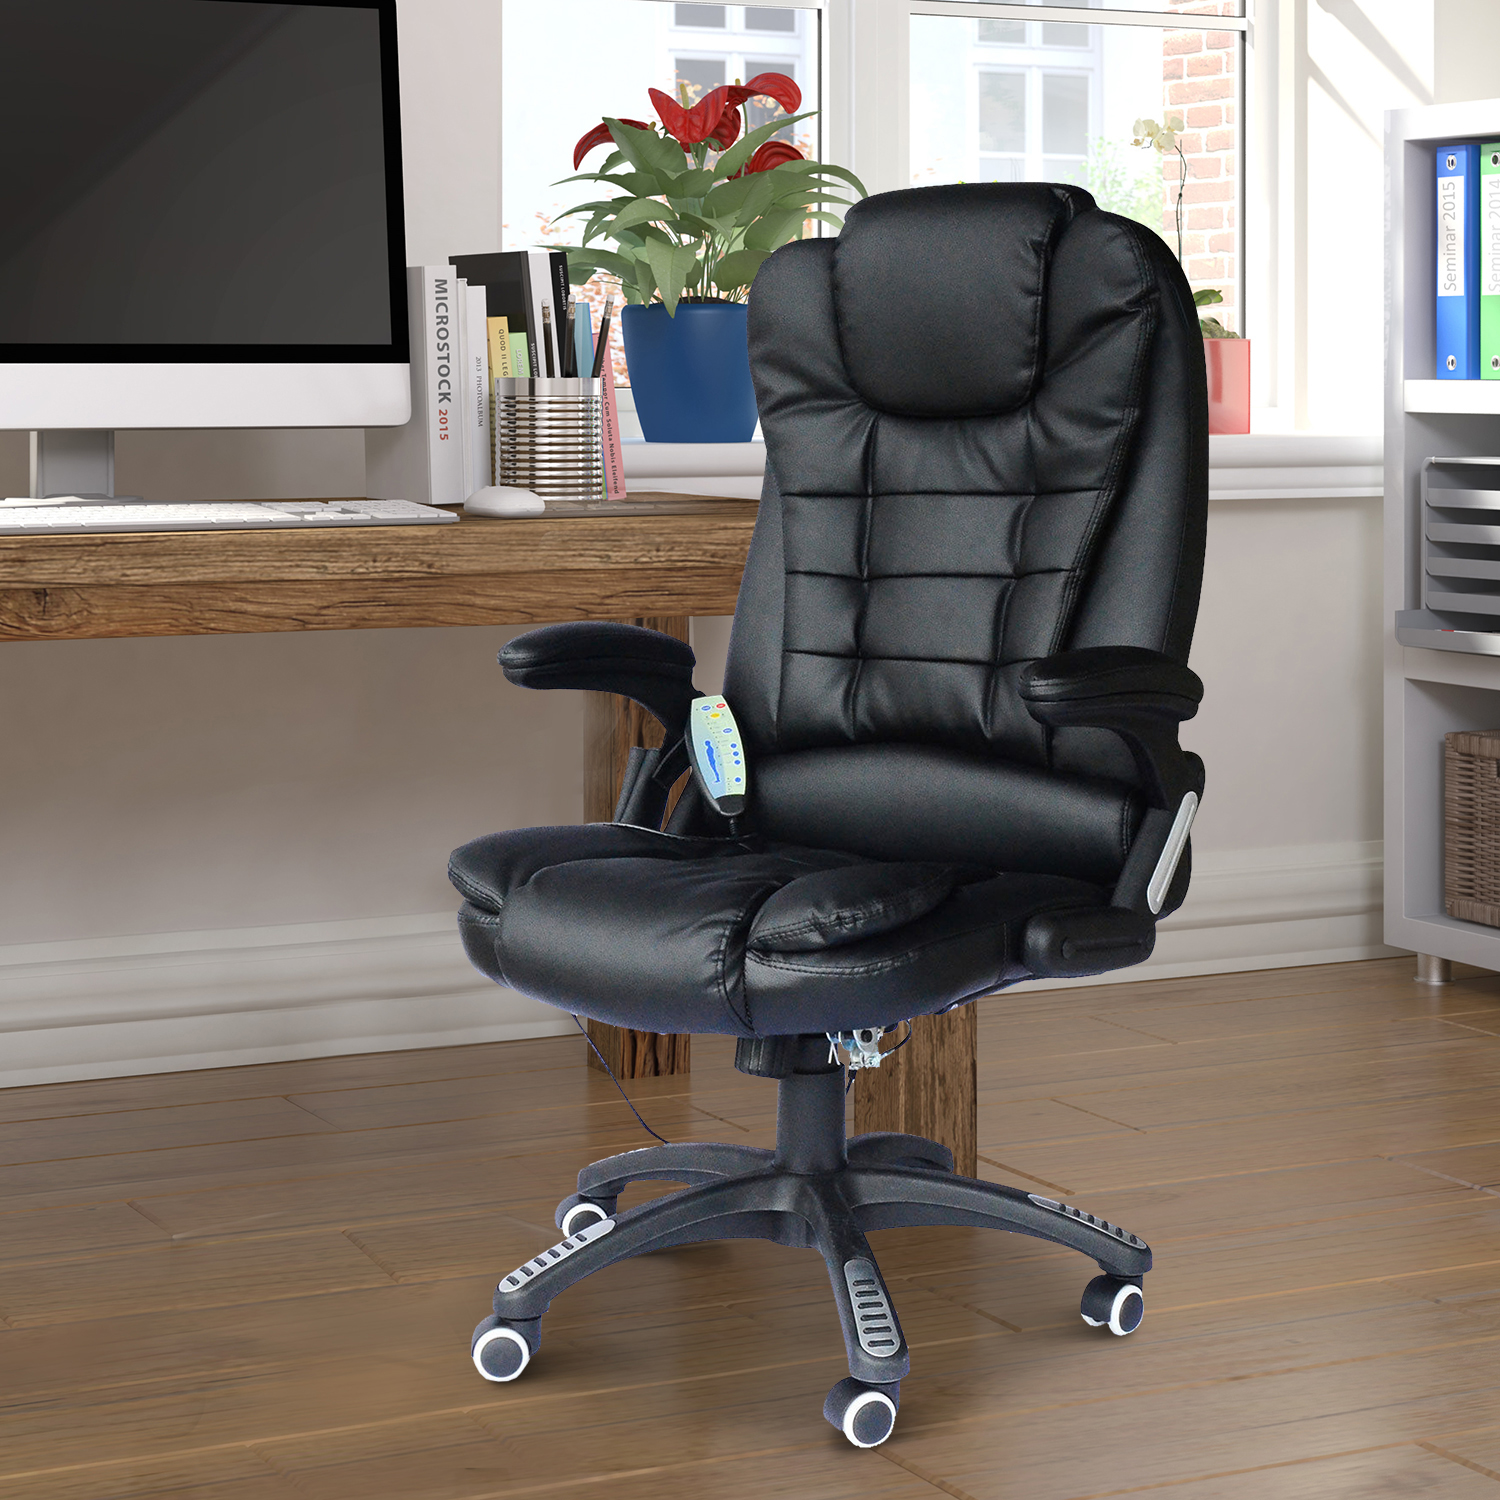 Homcom Executive Ergonomic PU Leather Heated Vibrating Mage ... on heated chair cushion, vibration chair, heated chair mat, heated outdoor chair, bathroom chair, vibrating gaming chair, heated clinical chair, china chair, heated back massager for chairs, heated chair cover, heated seat pads for chairs, heated folding chair, heated recliner chairs, heated ergonomic chair, heated bean bag chair, heated desk chair pad, heated massage chair, person on a vibrating chair, heated camp chair, heated lounge chair,